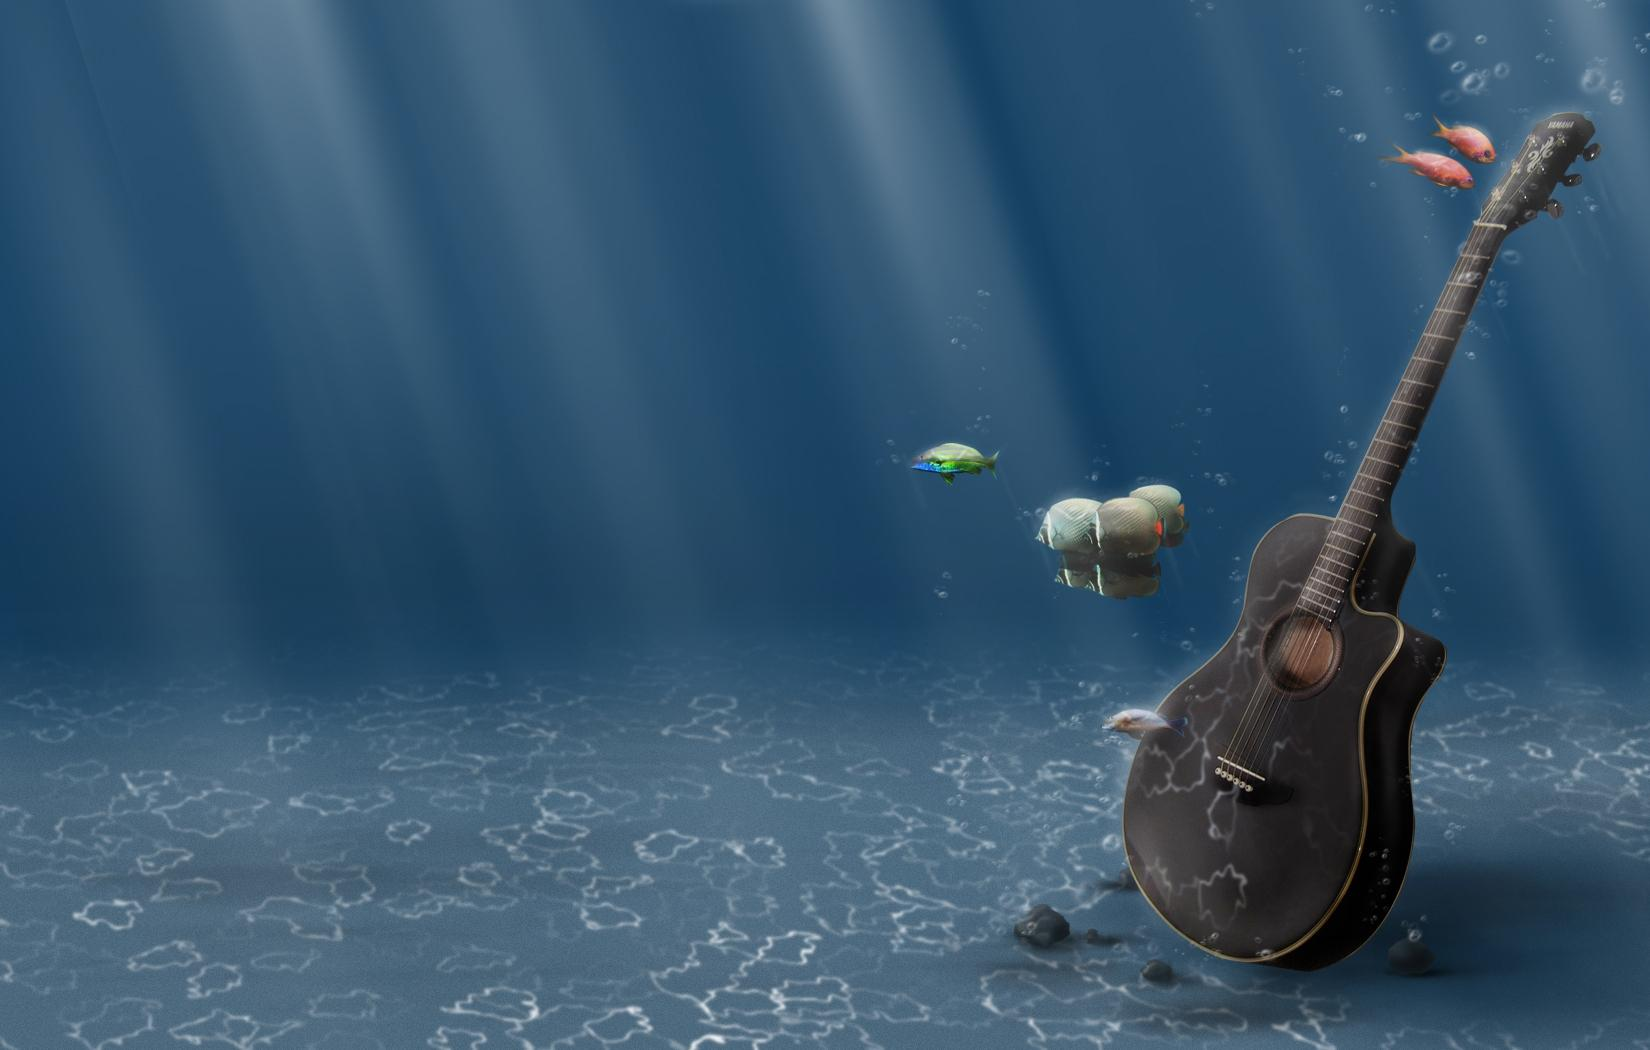 guitars underwater fishes 1650x1050 wallpapers High Quality